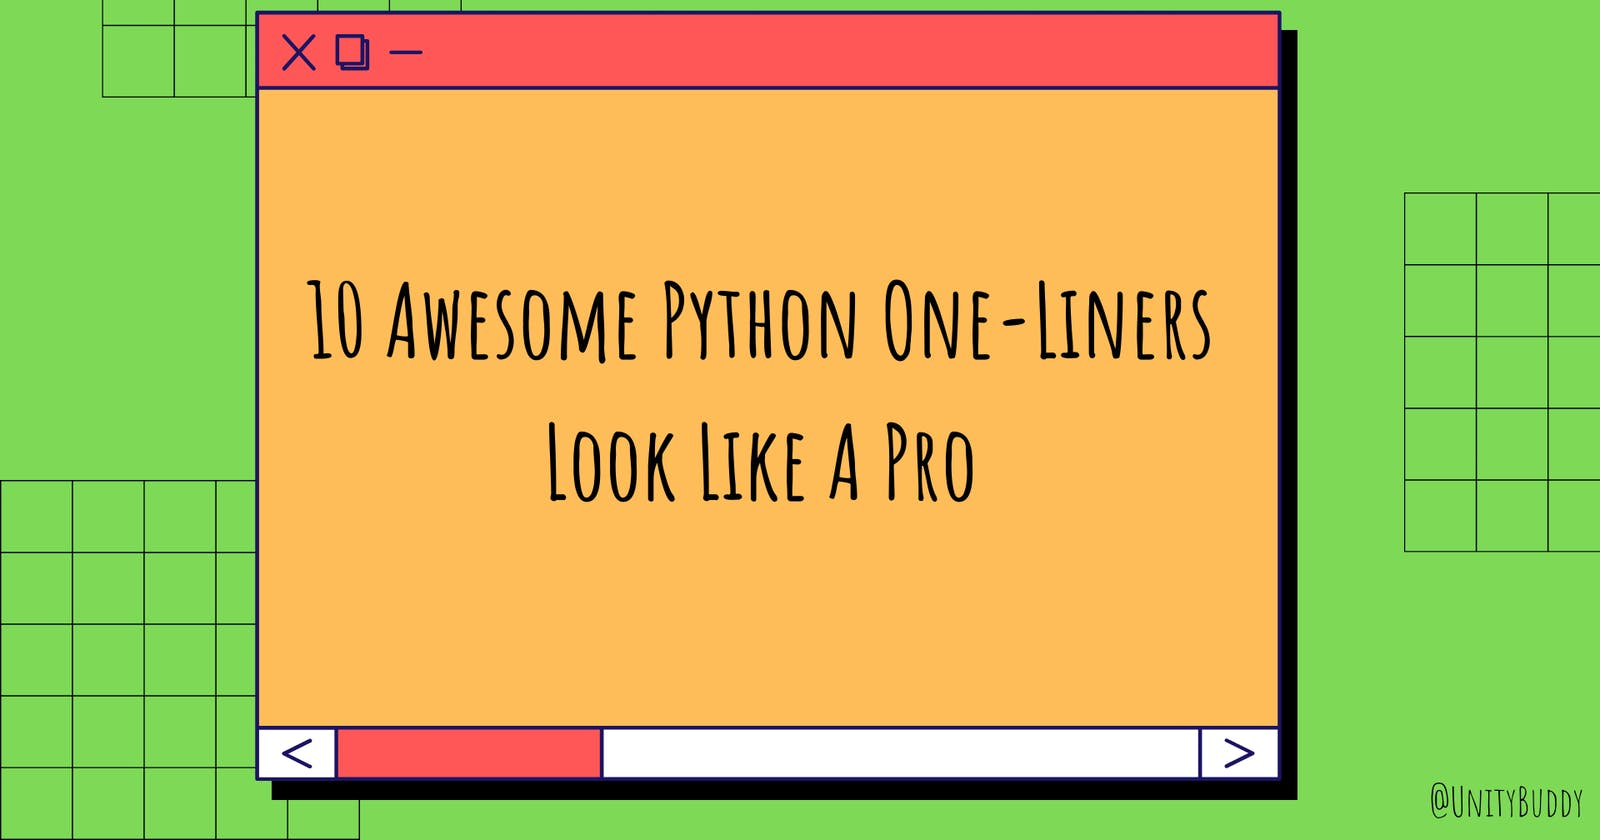 10 Awesome Python One-Liners Look Like A Pro 😎